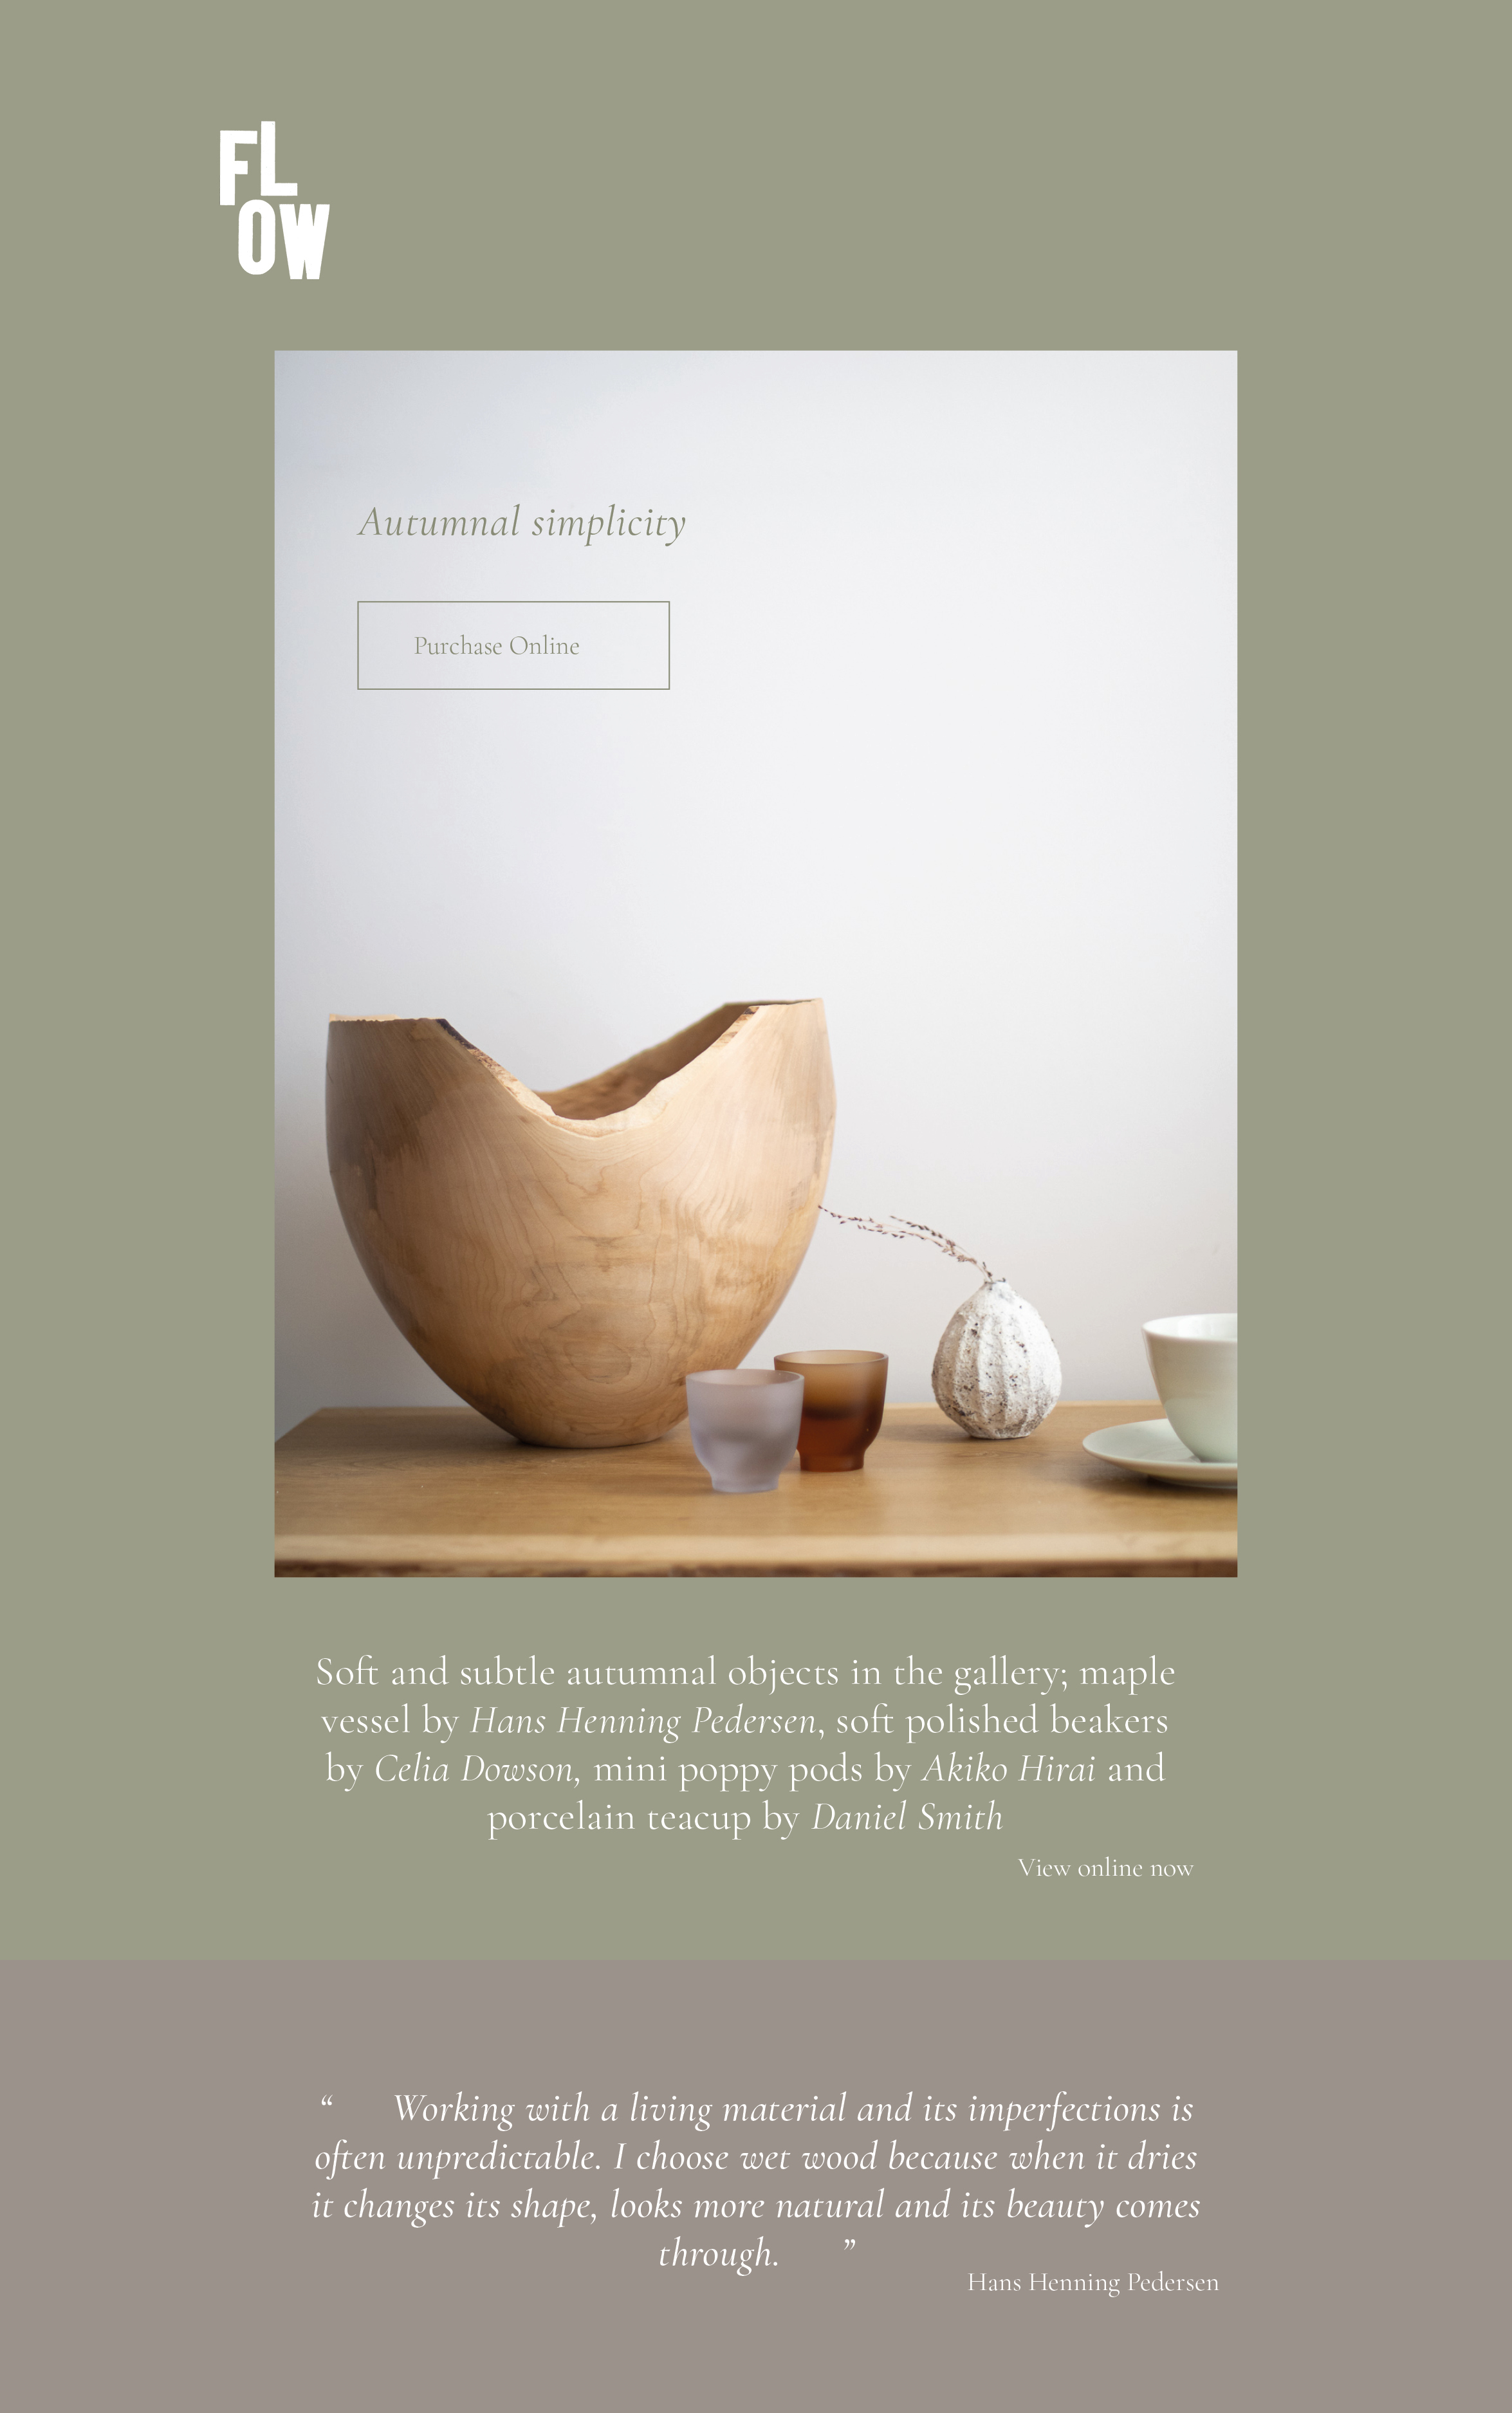 Soft and subtle autumnal objects in the gallery; maple vessel by Hans Henning Pedersen, soft polished beakers by Celia Dowson, mini poppy pods by Akiko Hirai and porcelain teacup by Daniel Smith